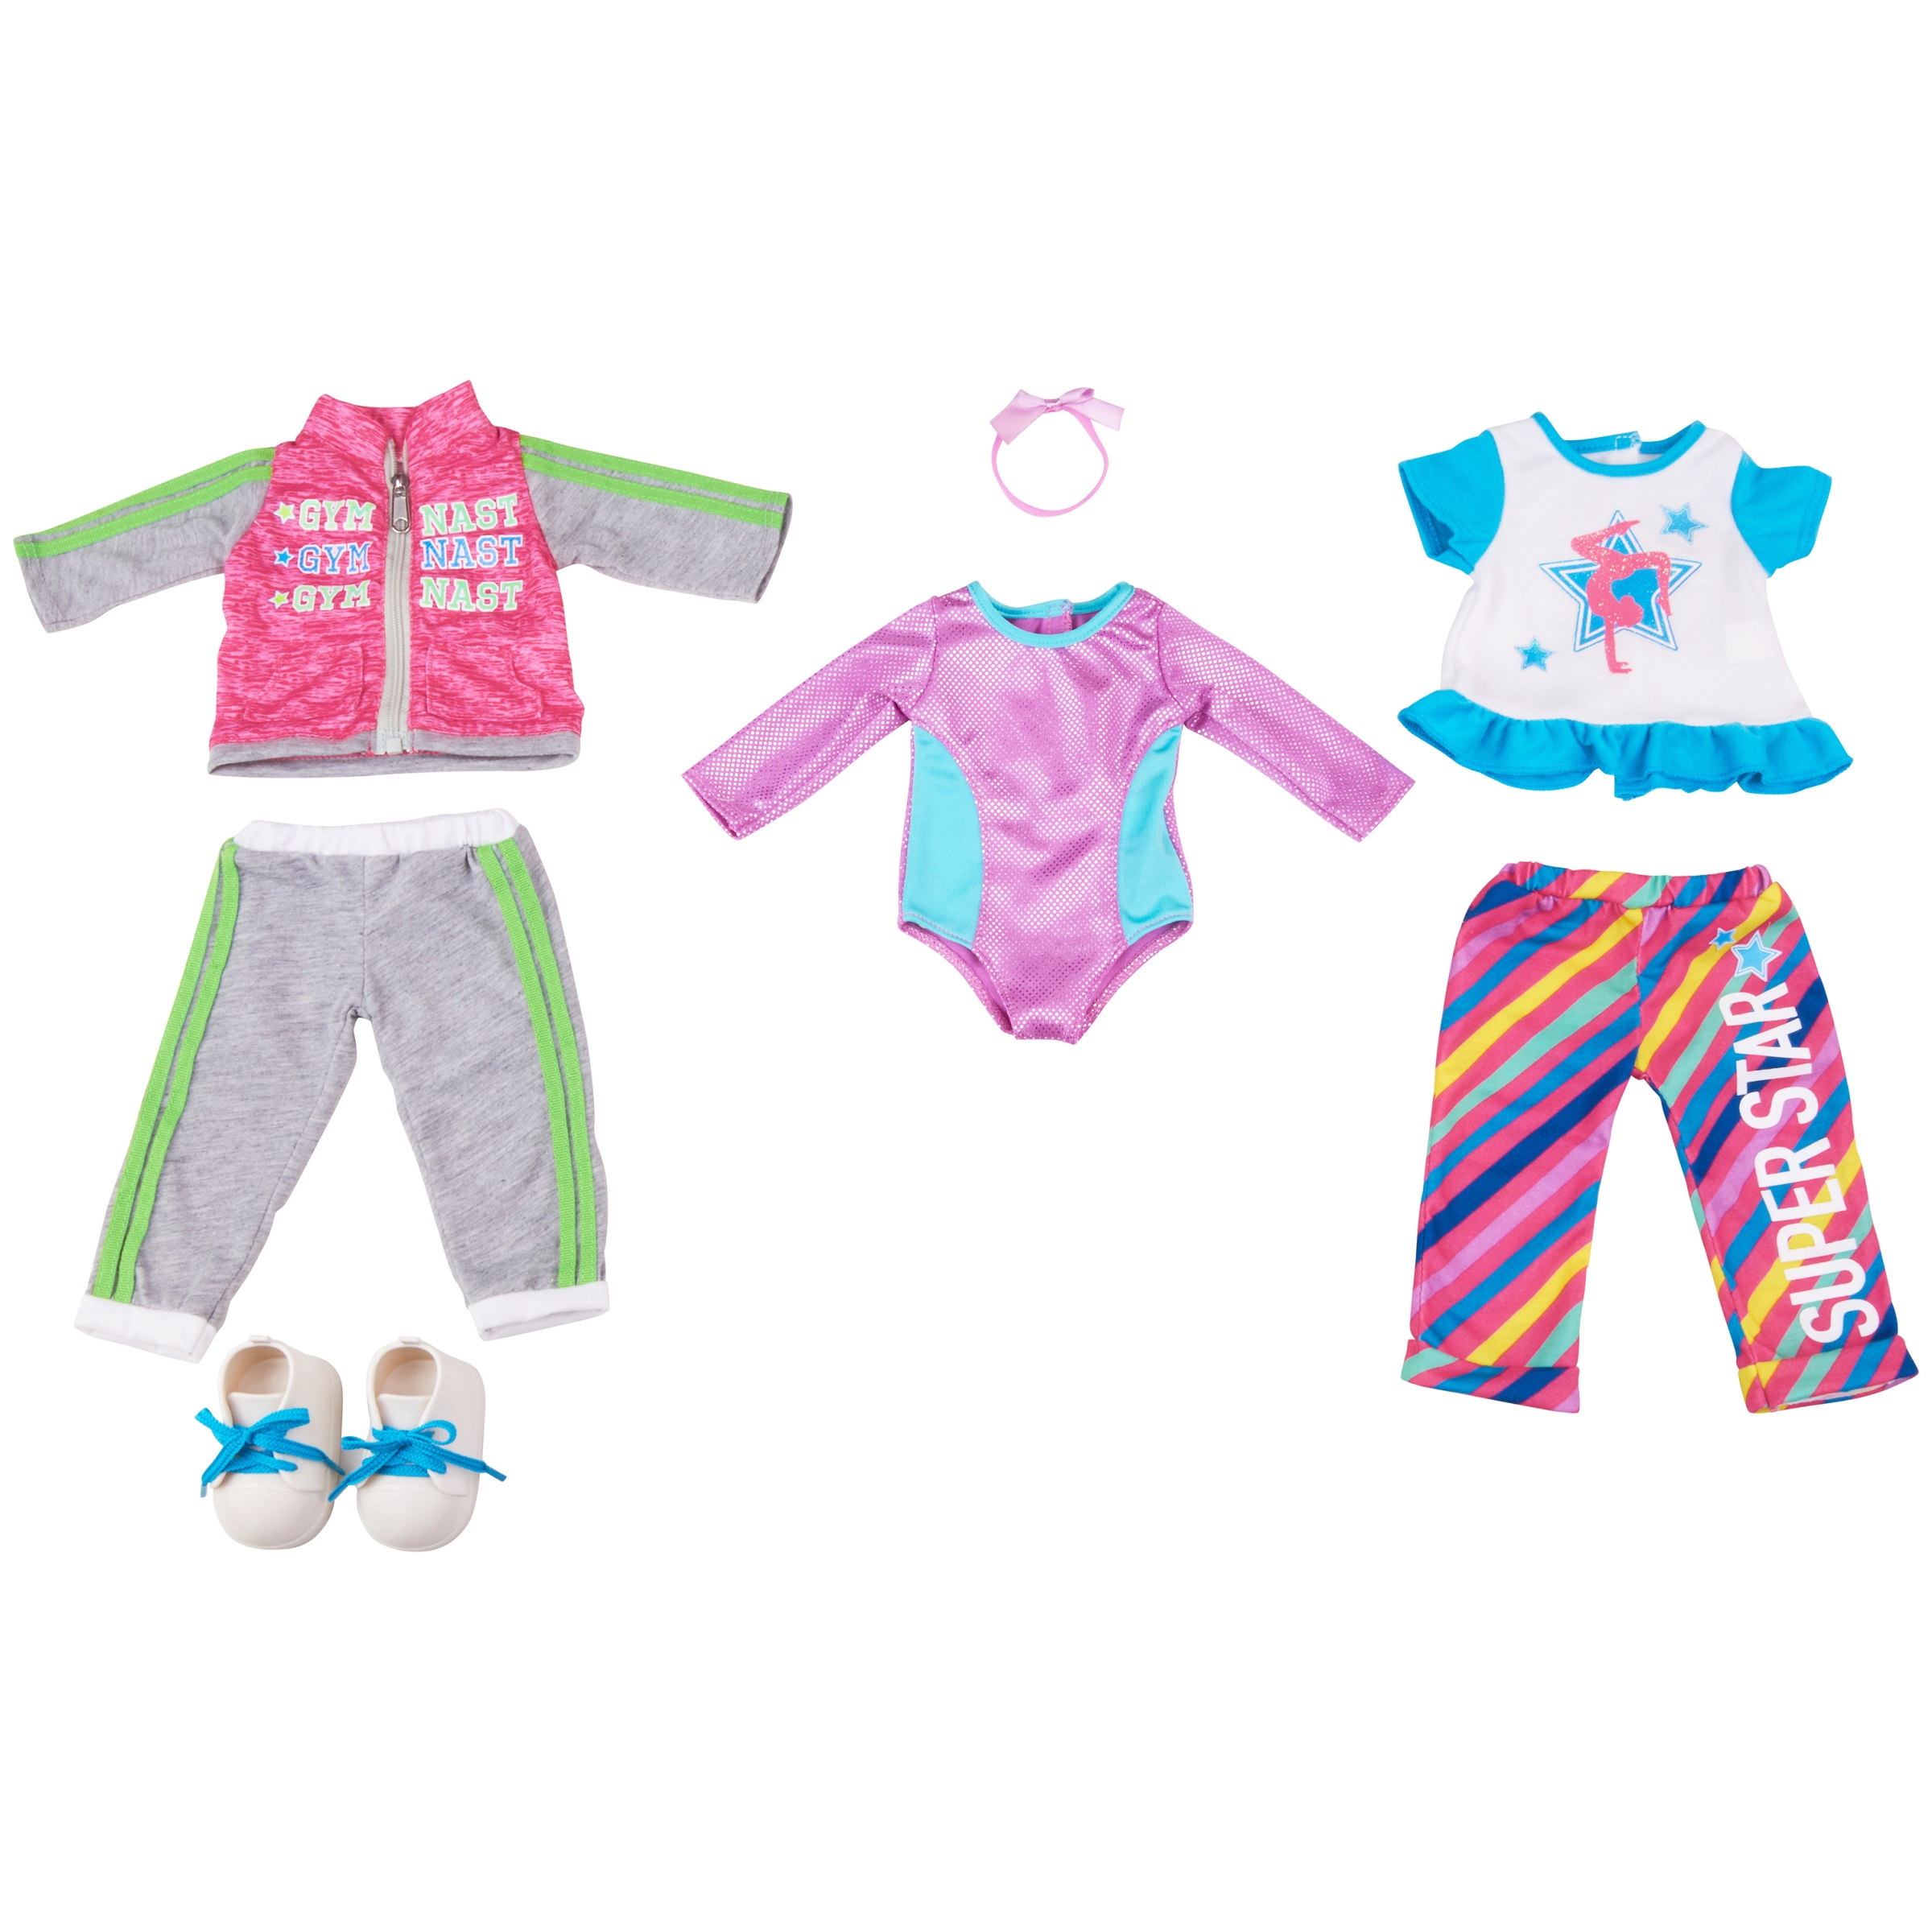 My Life As 7-Piece Gymnast Doll Outfits Set, Designed for Ages 5 and Up